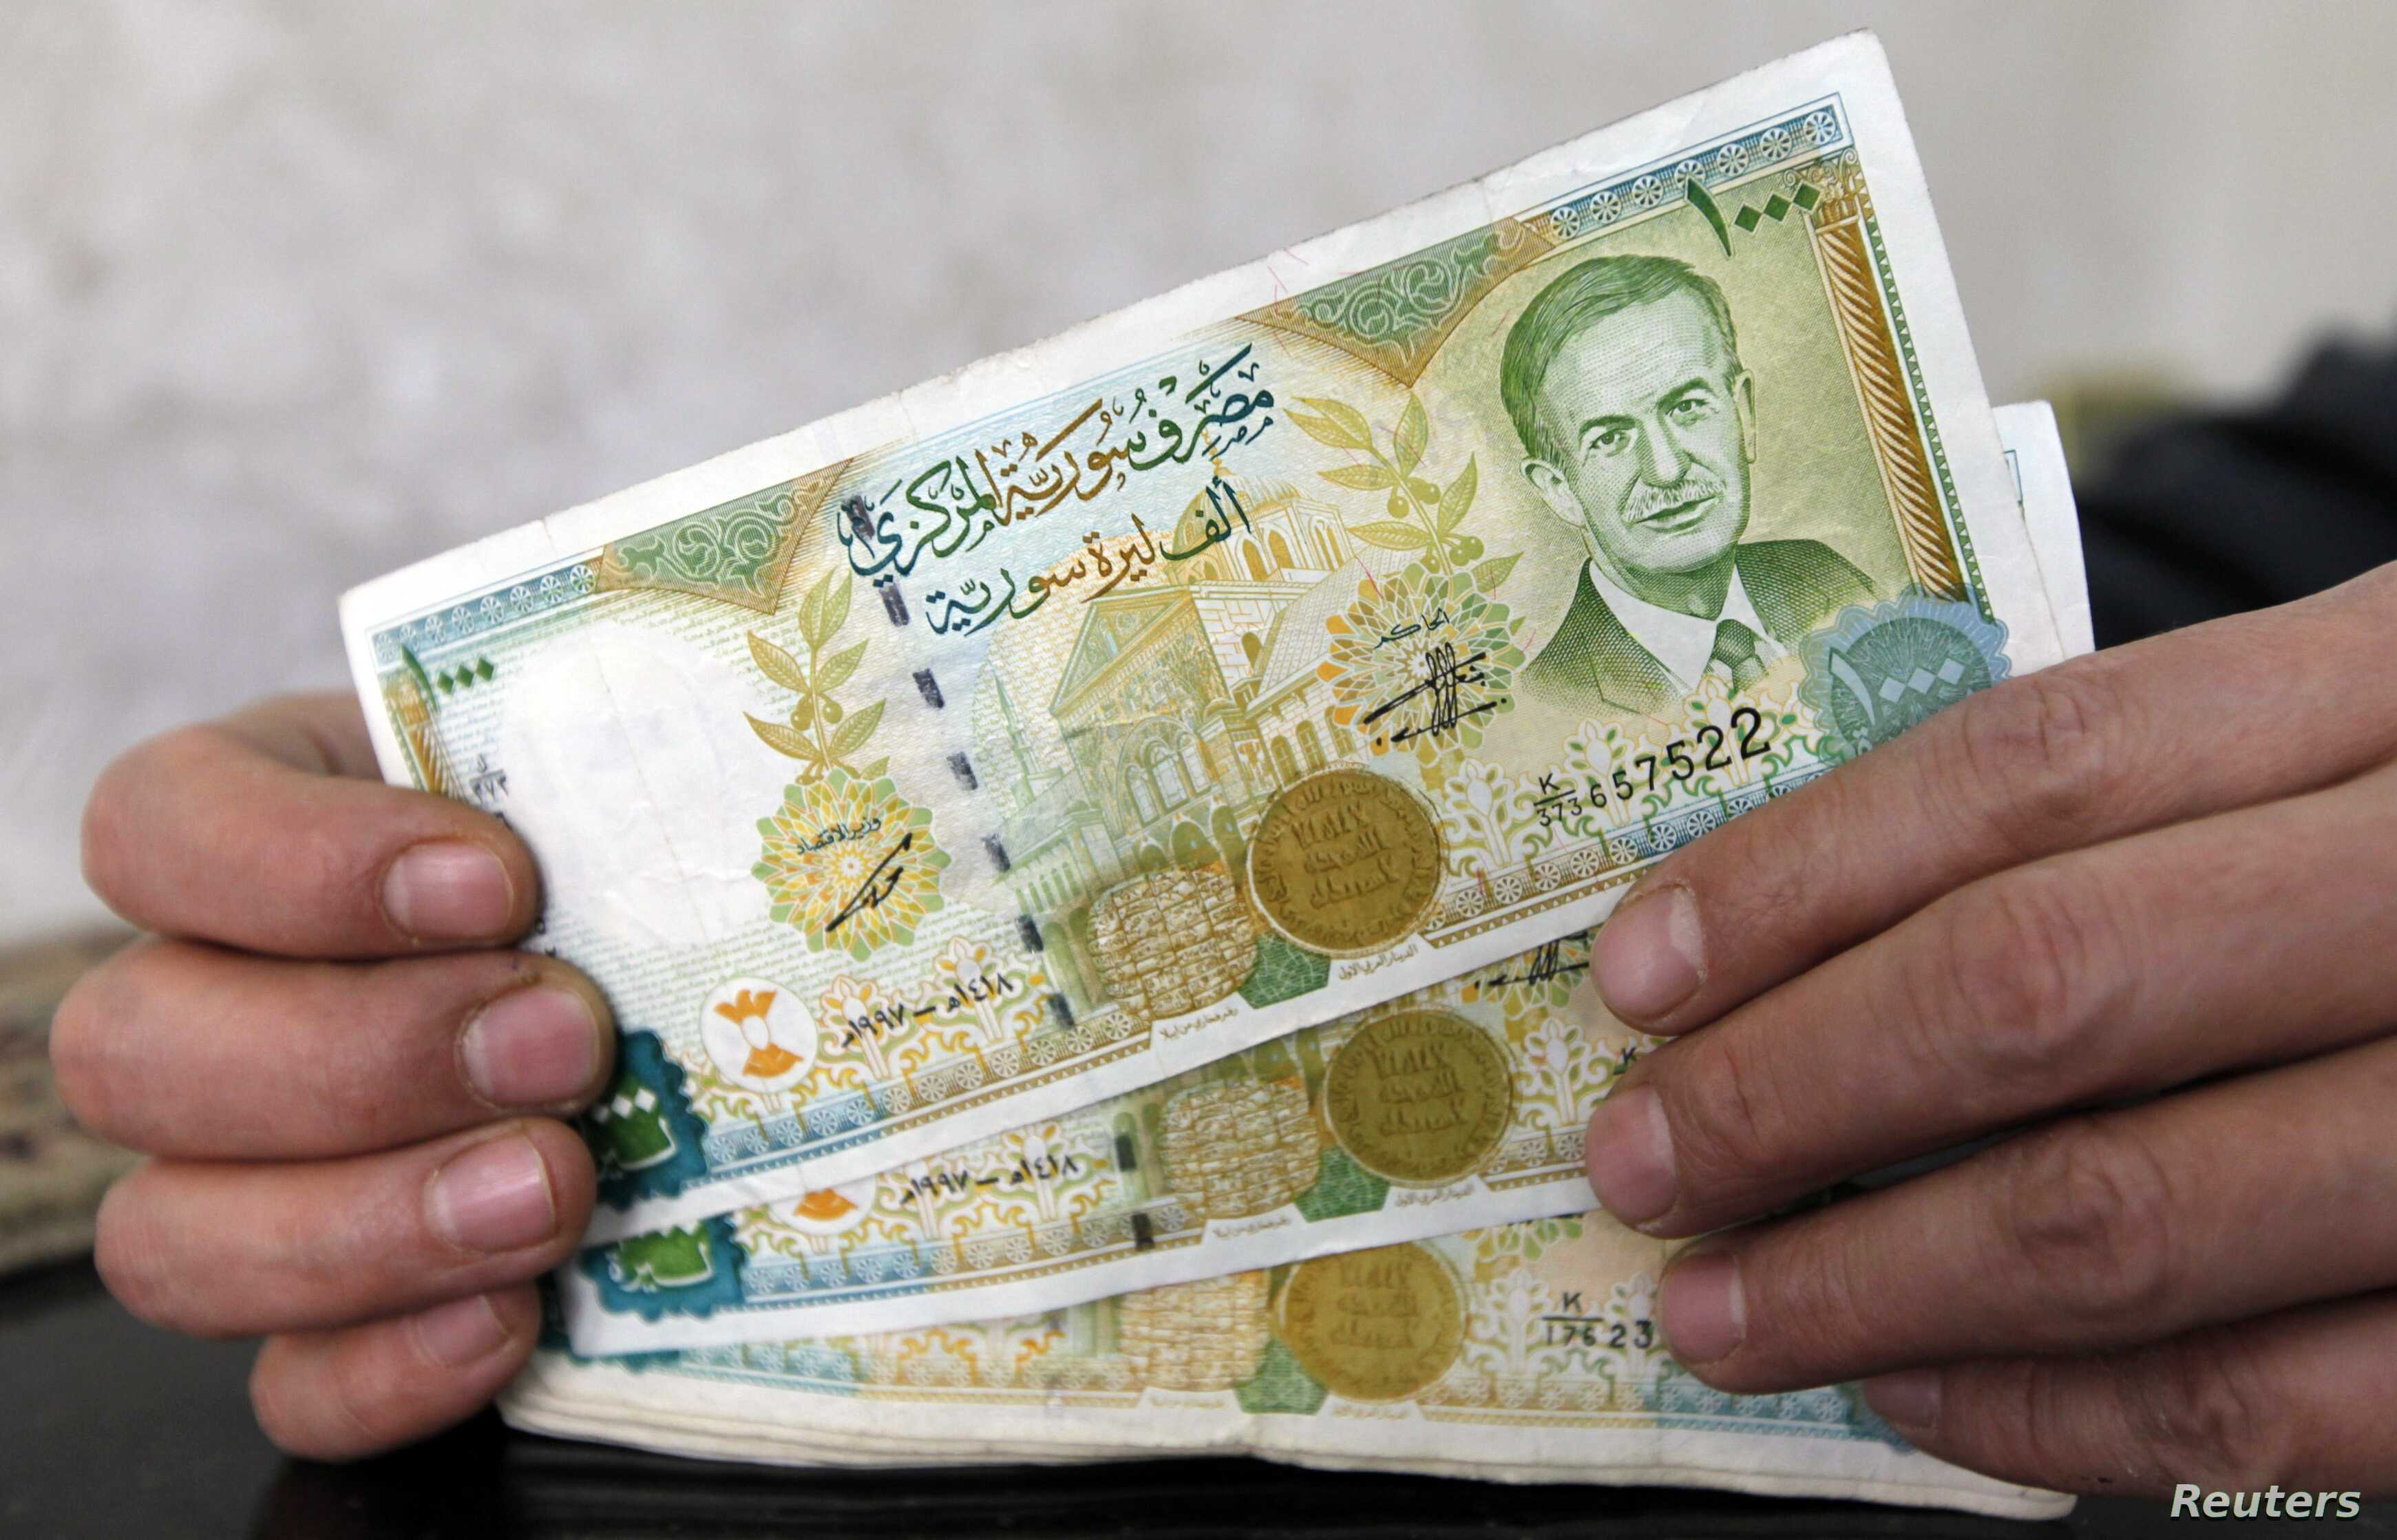 Syrian Steps To Control Hyperinflation